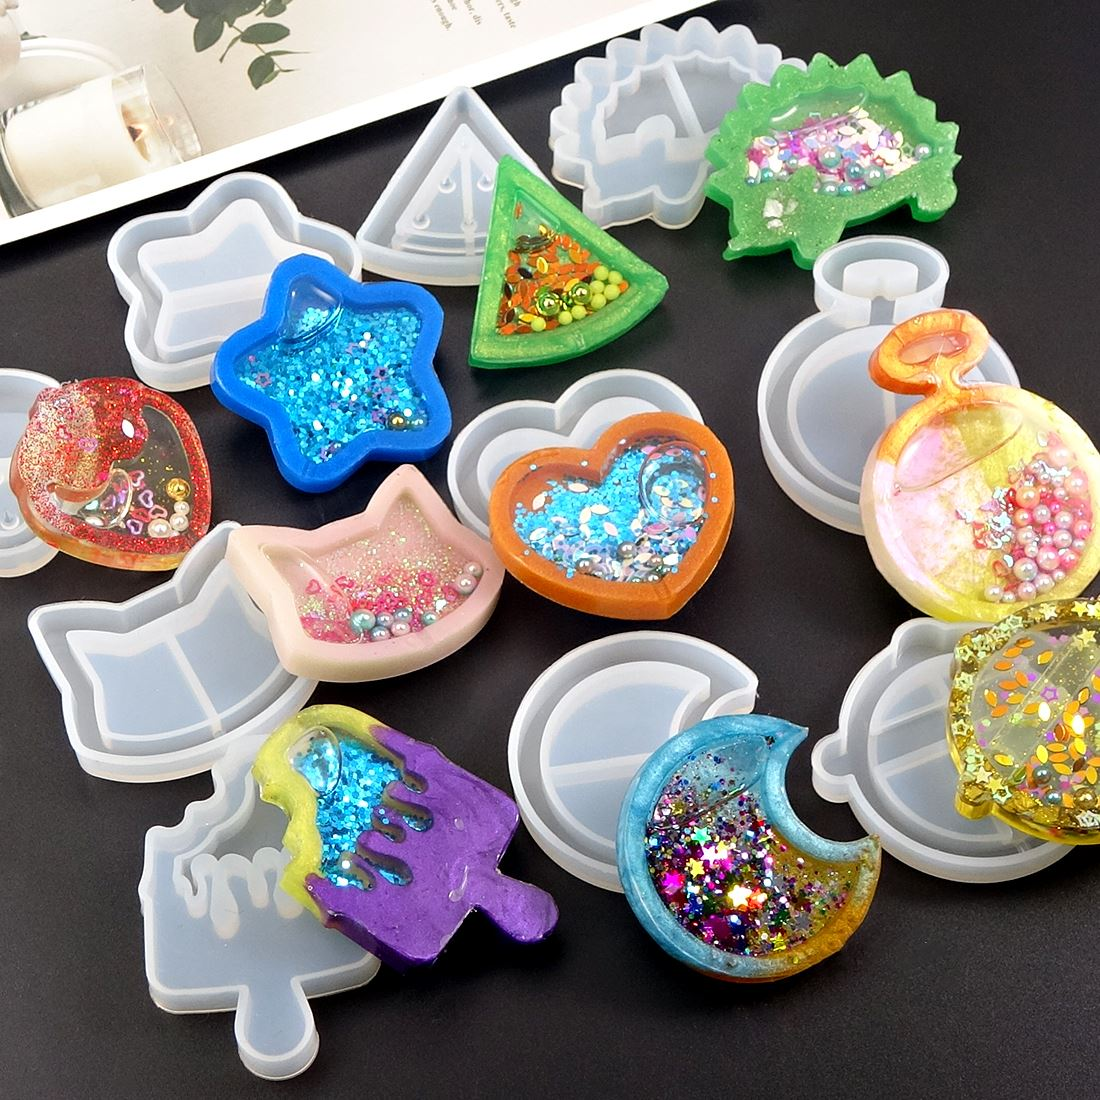 Heart Star Moon UV Epoxy Resin Moulds Silicone Resin Jewelry Making Molds Key Chain Pendant Craft Jewelry Tools Set